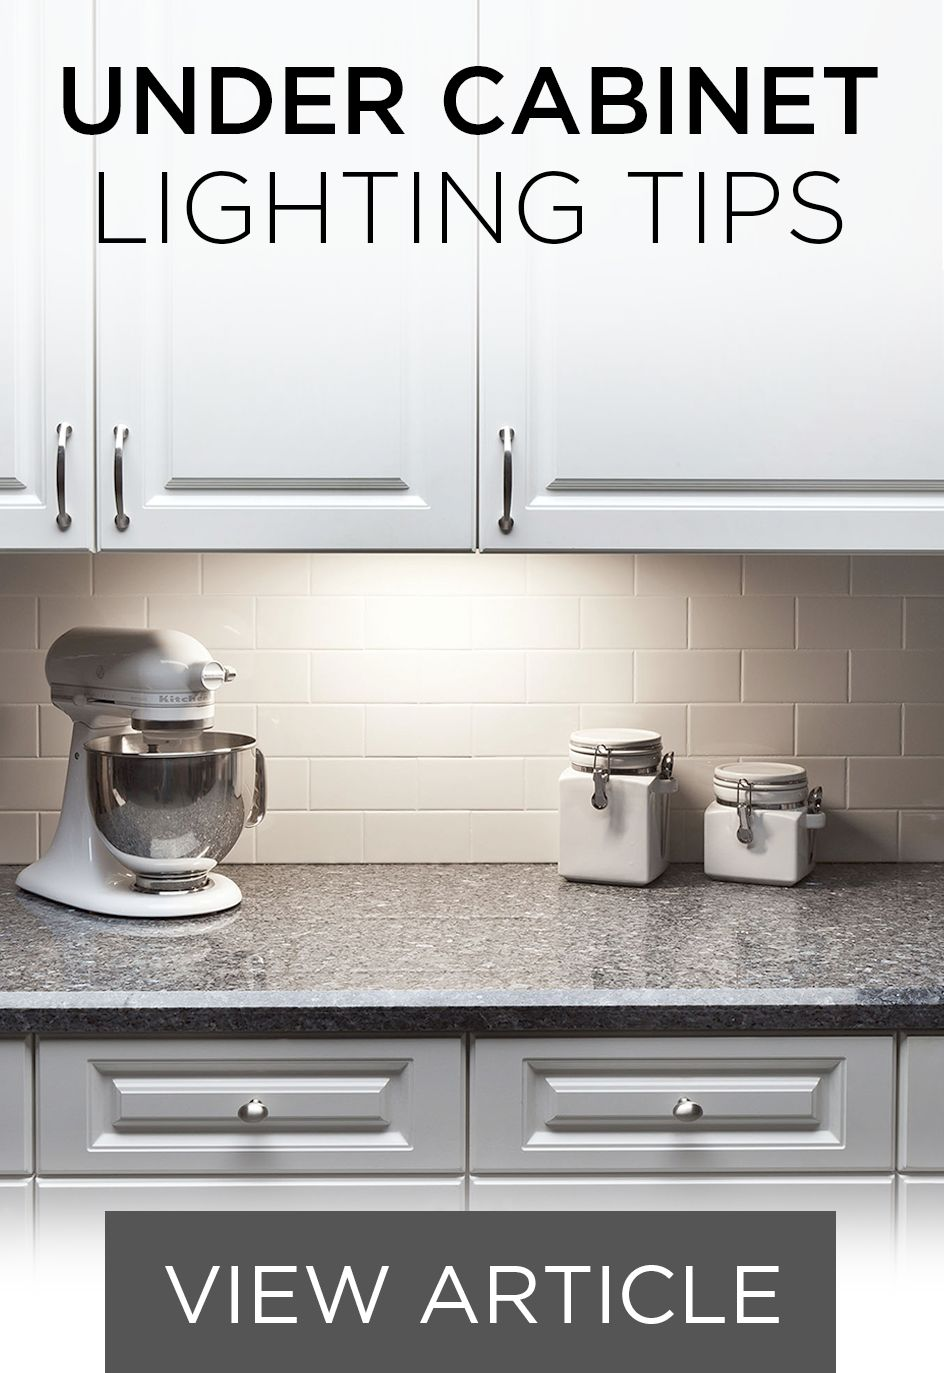 Under Cabinet Tips